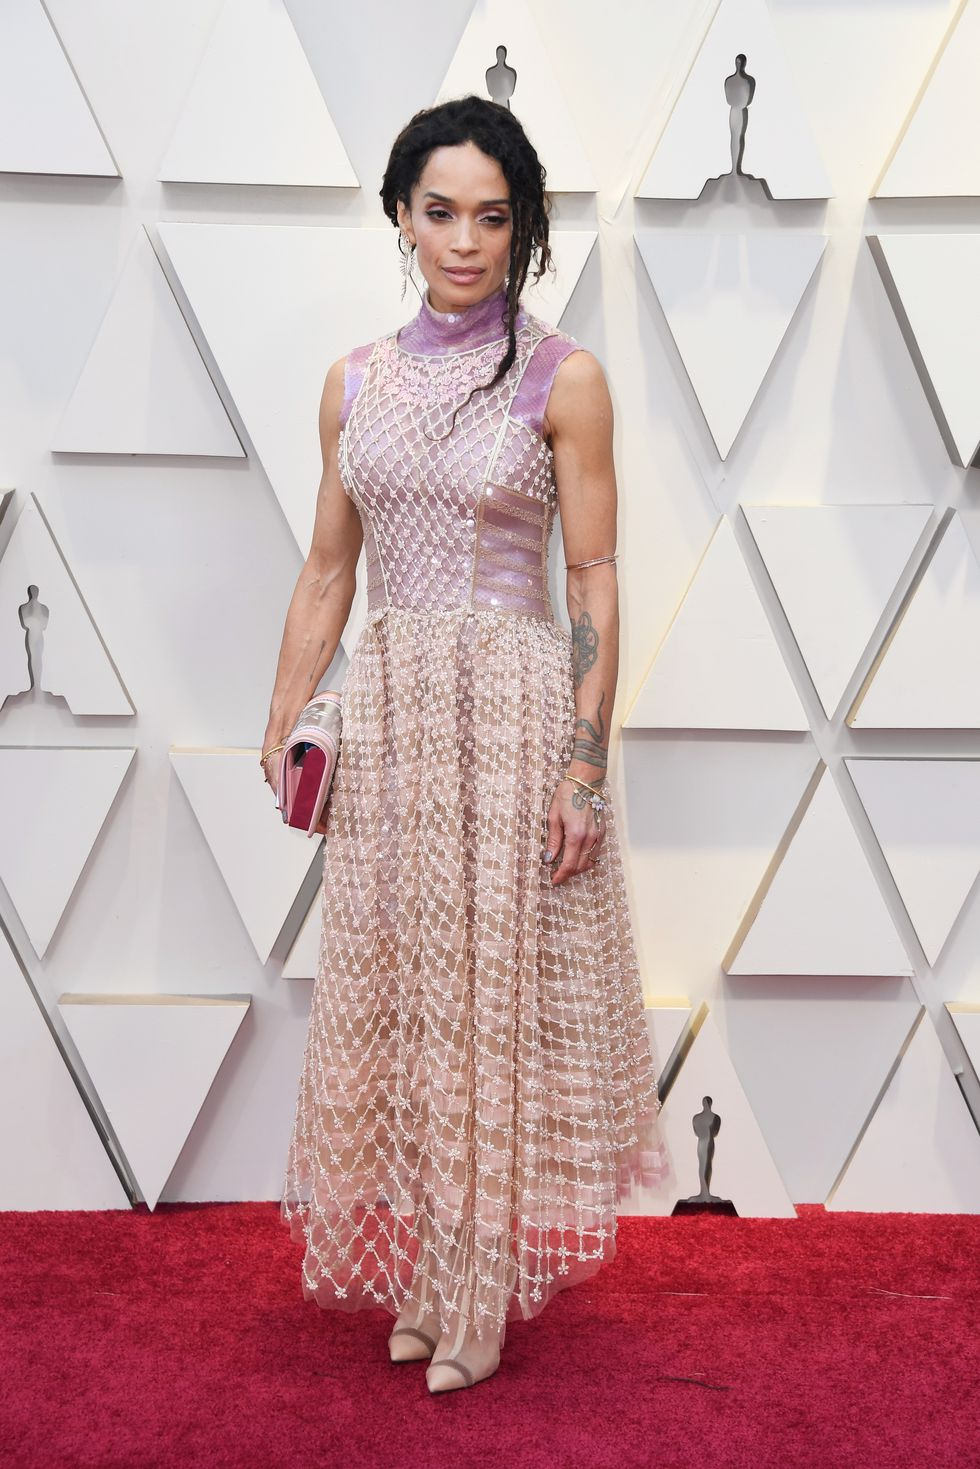 91st OSCARS RED CARPET 2019 LISA BONET.jpg